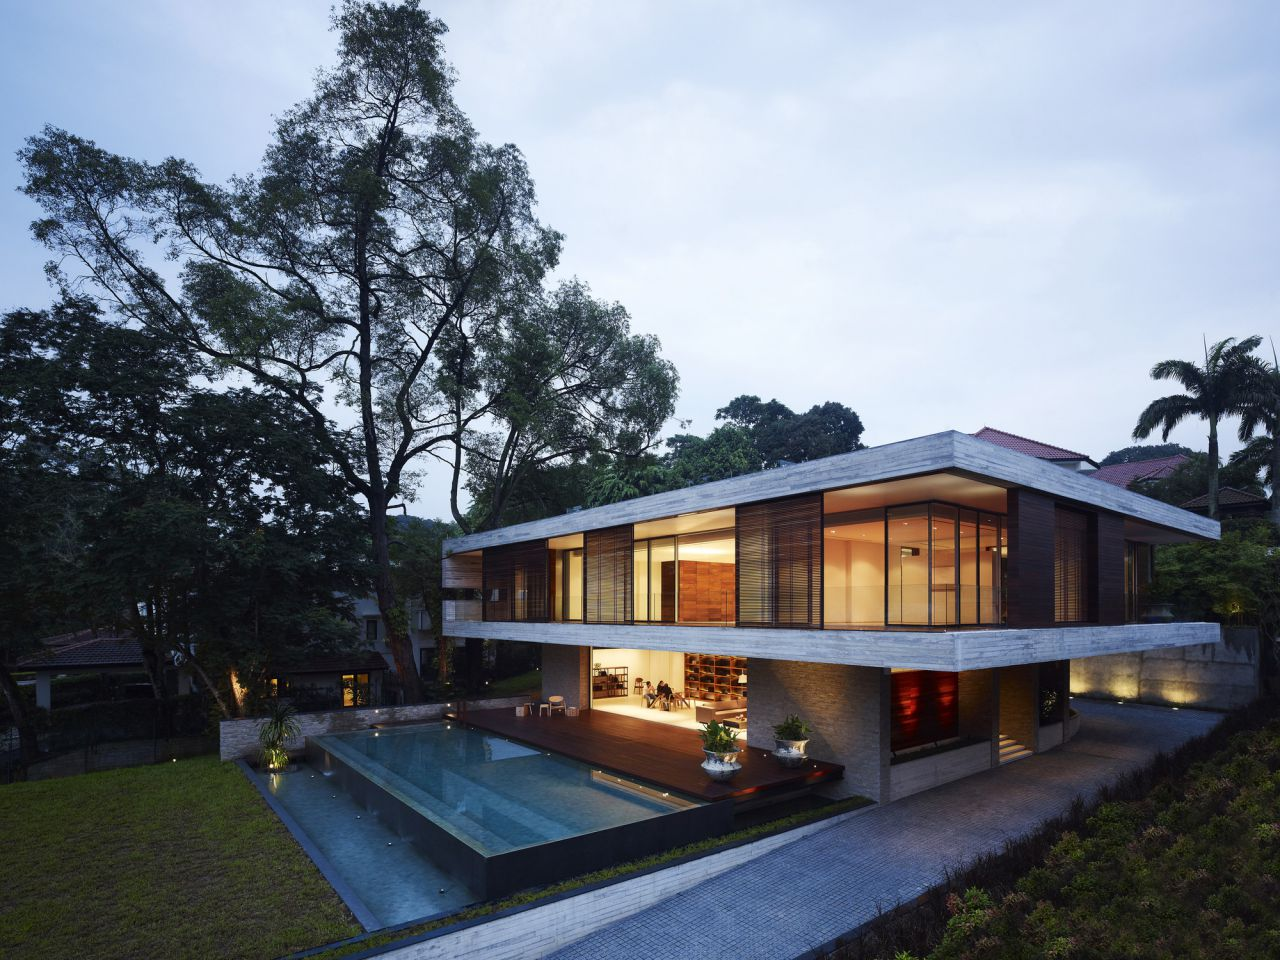 Luxury Residence in Singapore by Ong&Ong Architects